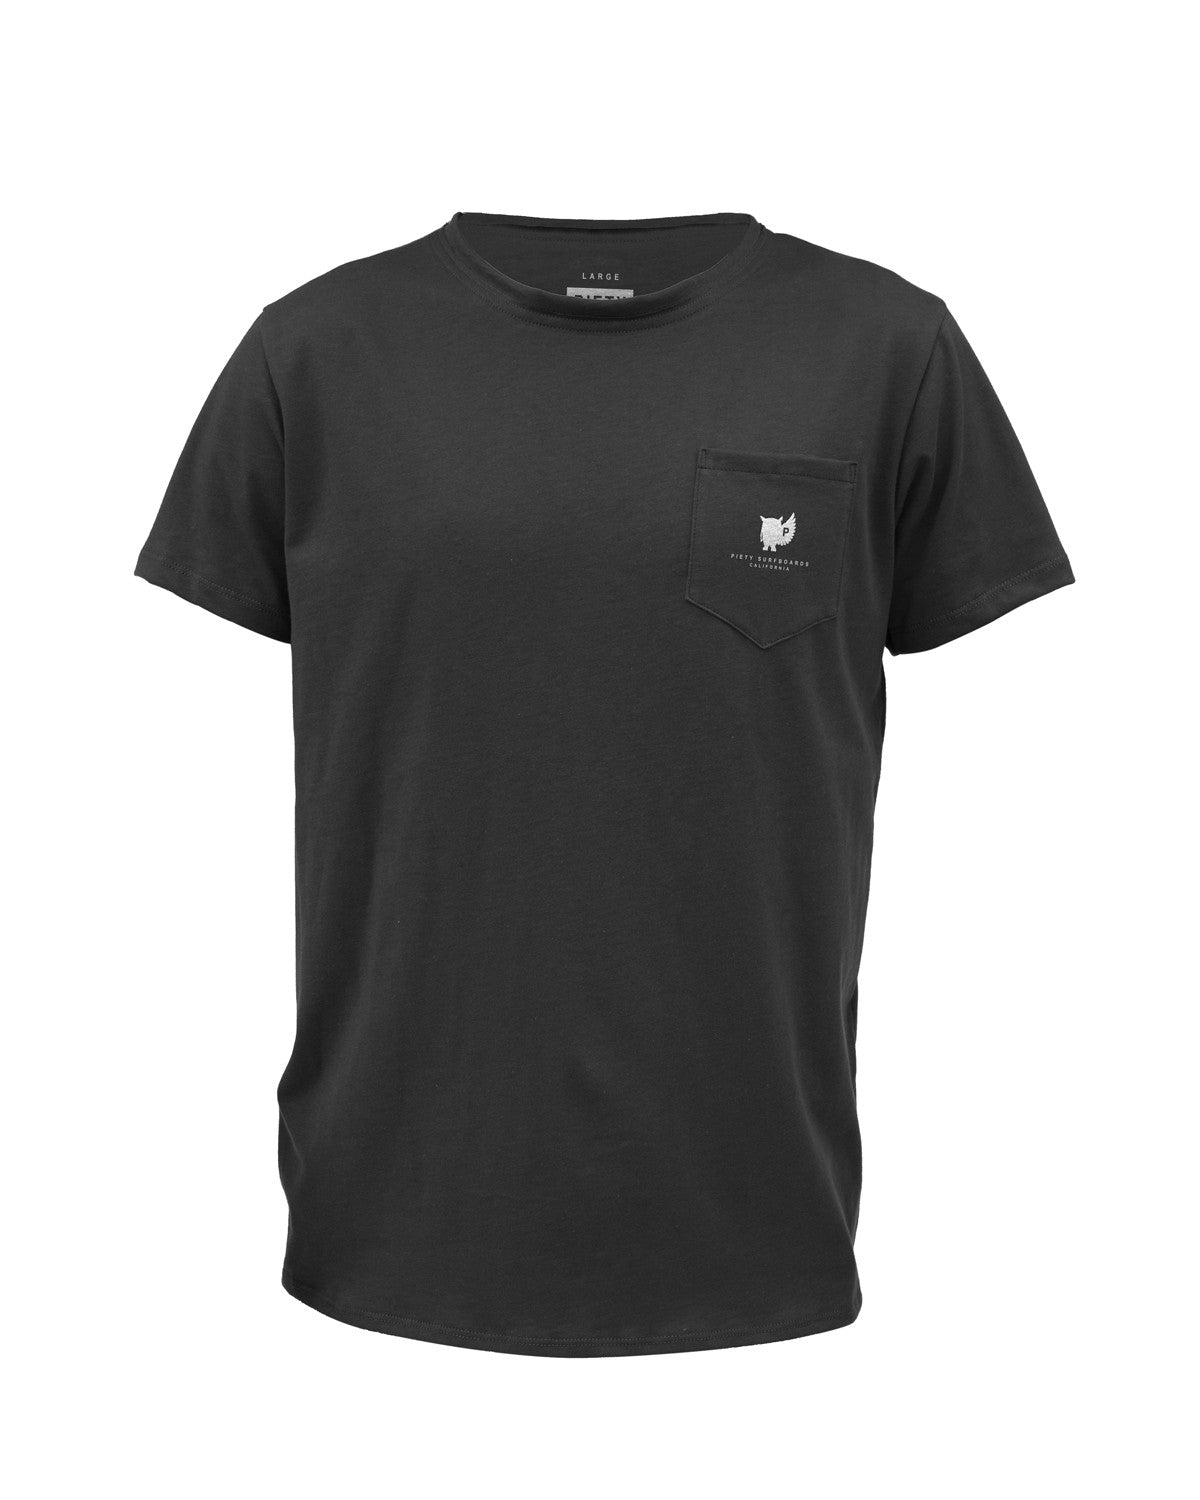 Making Waves - Pocket T-Shirt